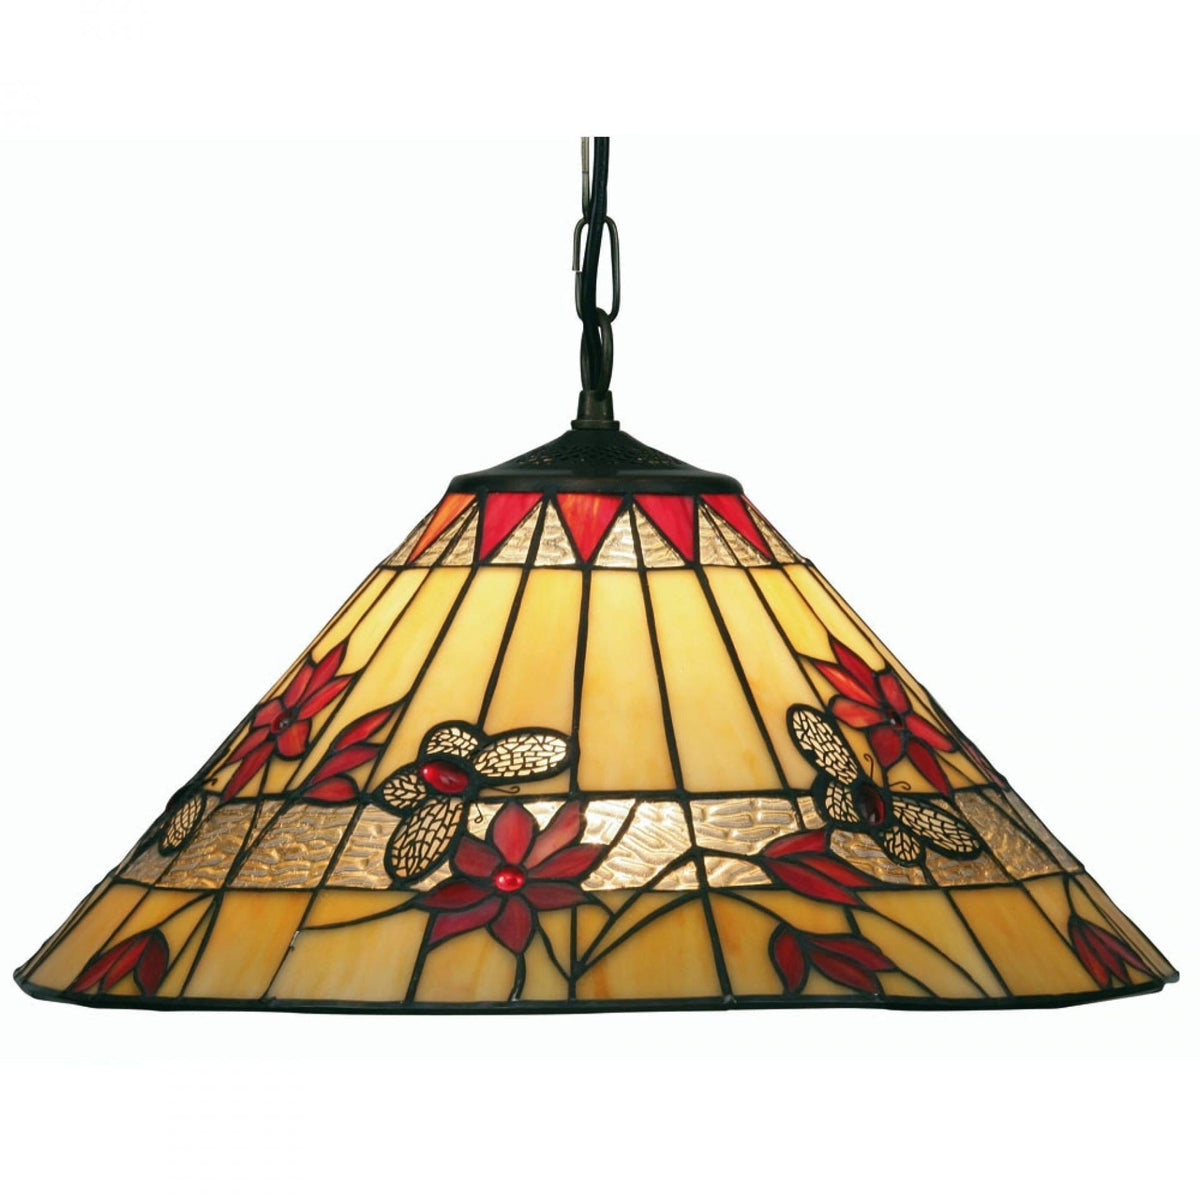 Tiffany Ceiling Pendant Lights - Butterfly Tiffany Ceiling Light,Single Bulb OT 2612/17P